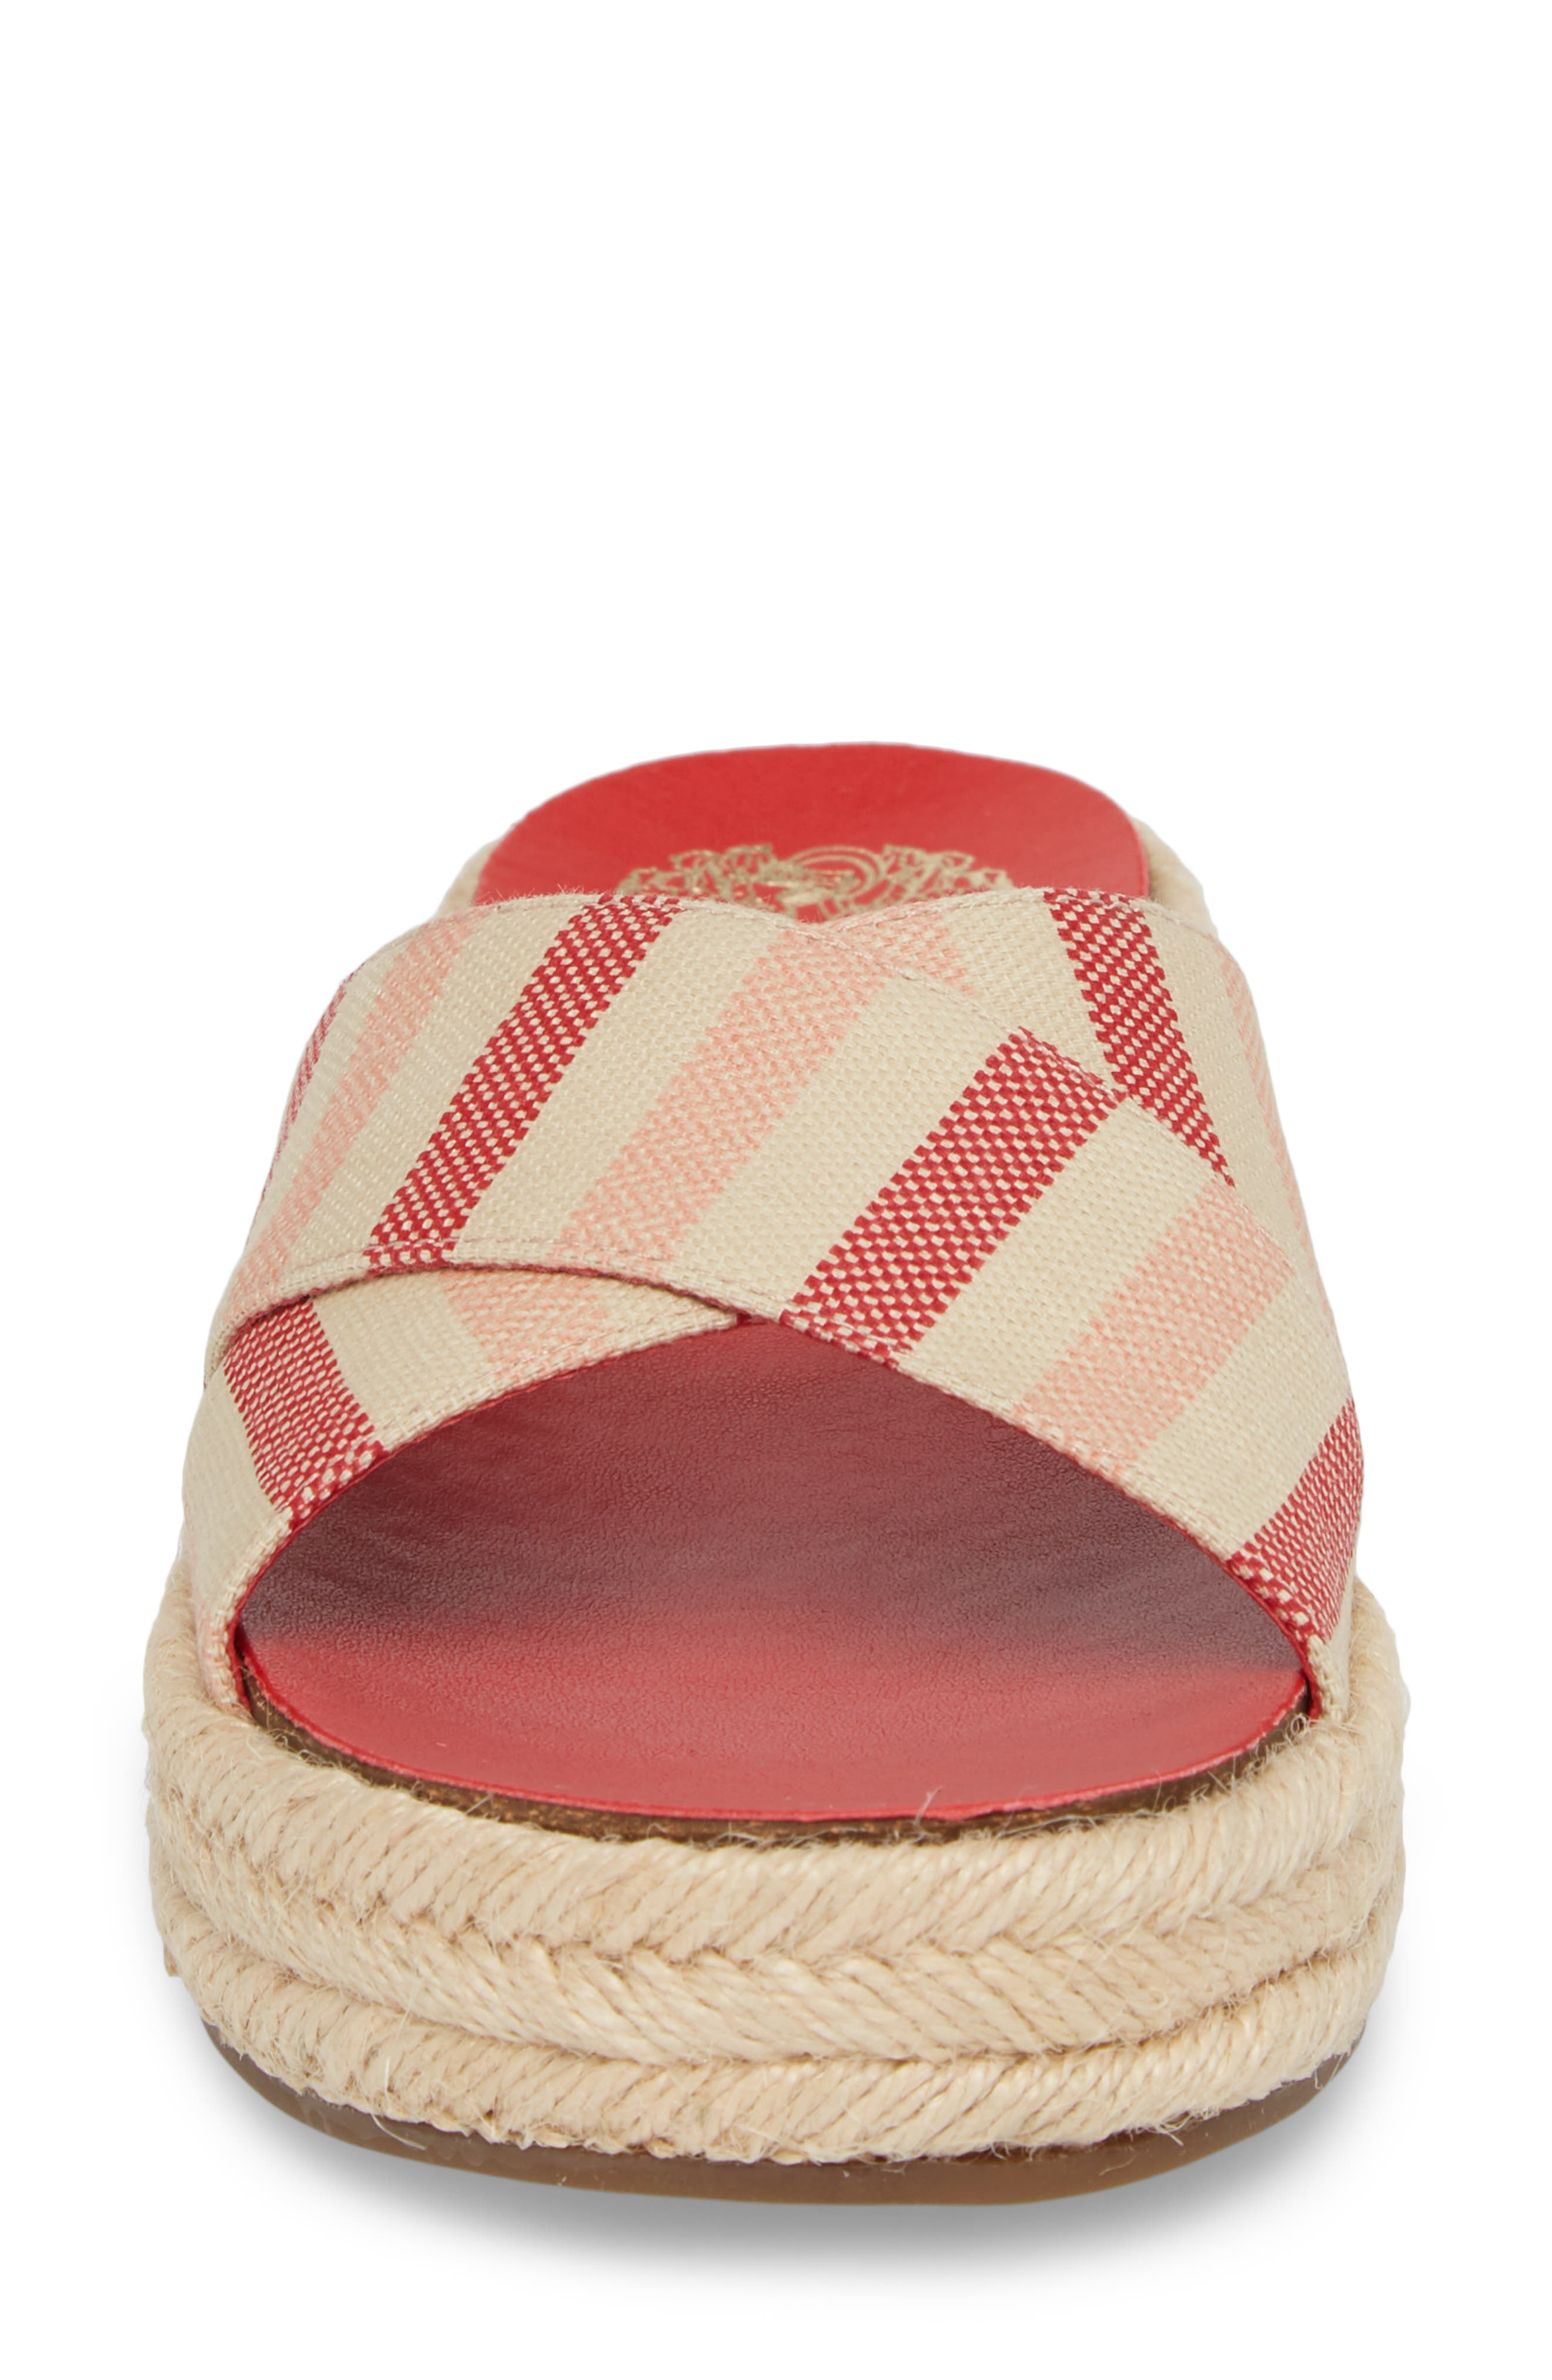 Carran Platform Sandal,                             Alternate thumbnail 4, color,                             Red Hot Rio Stripe Canvas